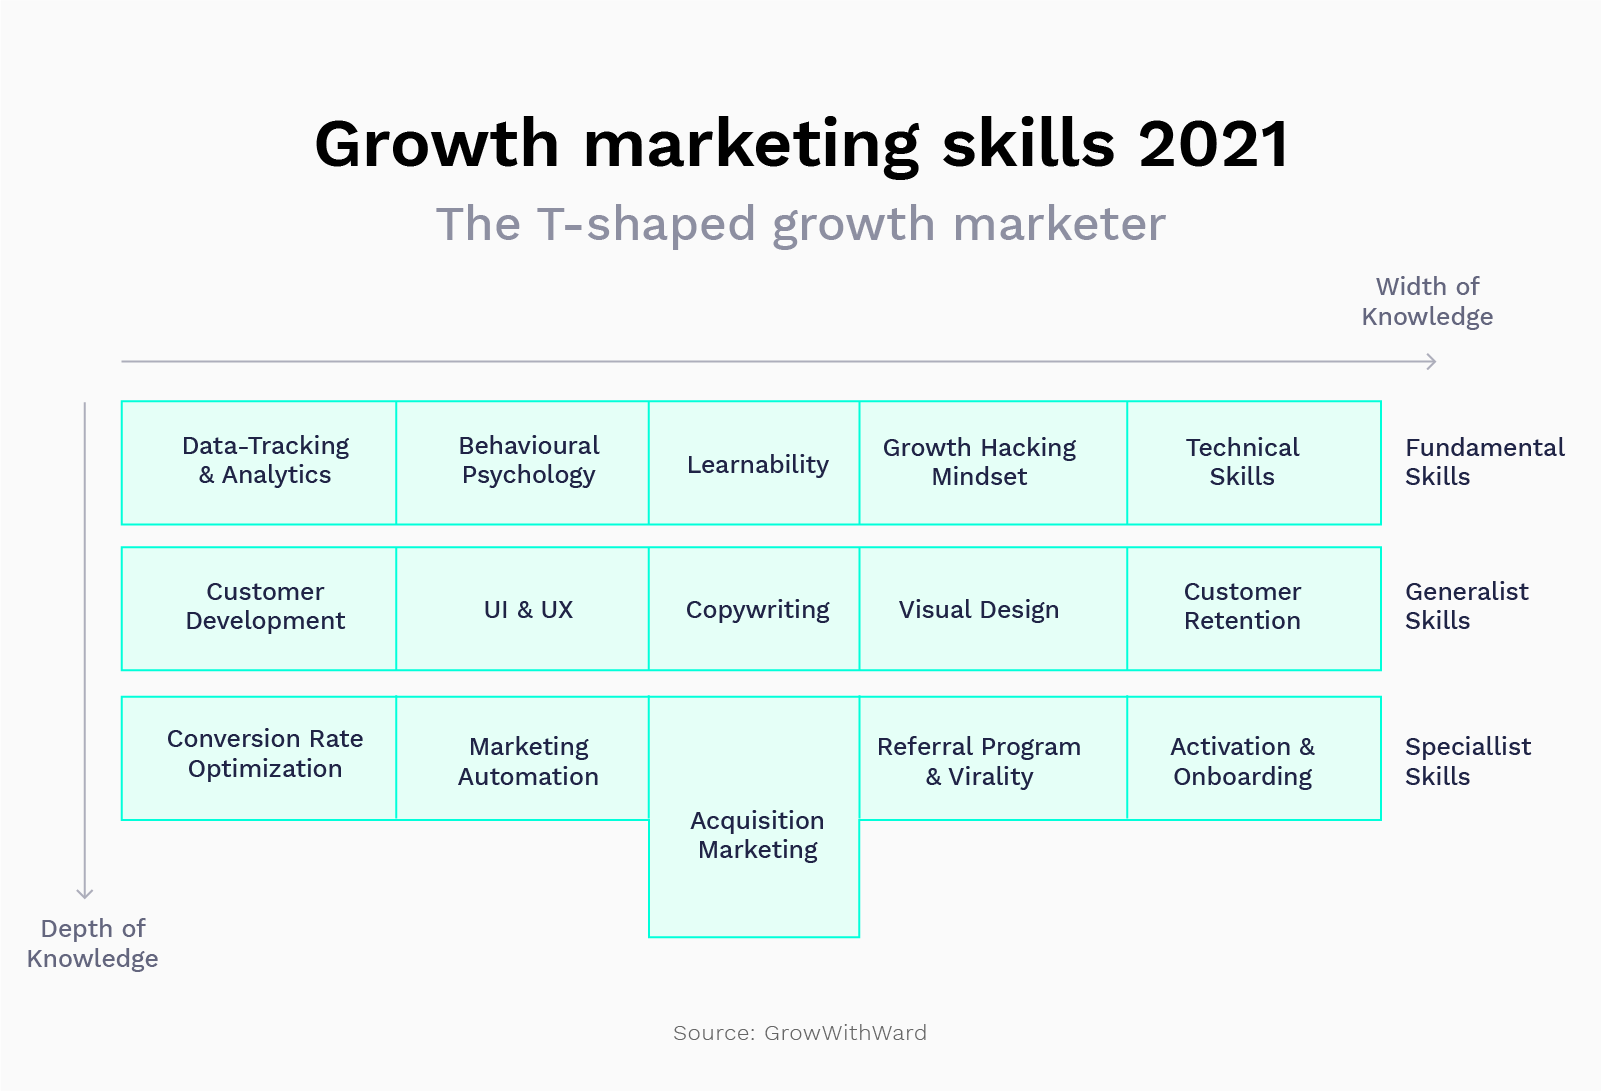 T-shaped growth marketer in 2021